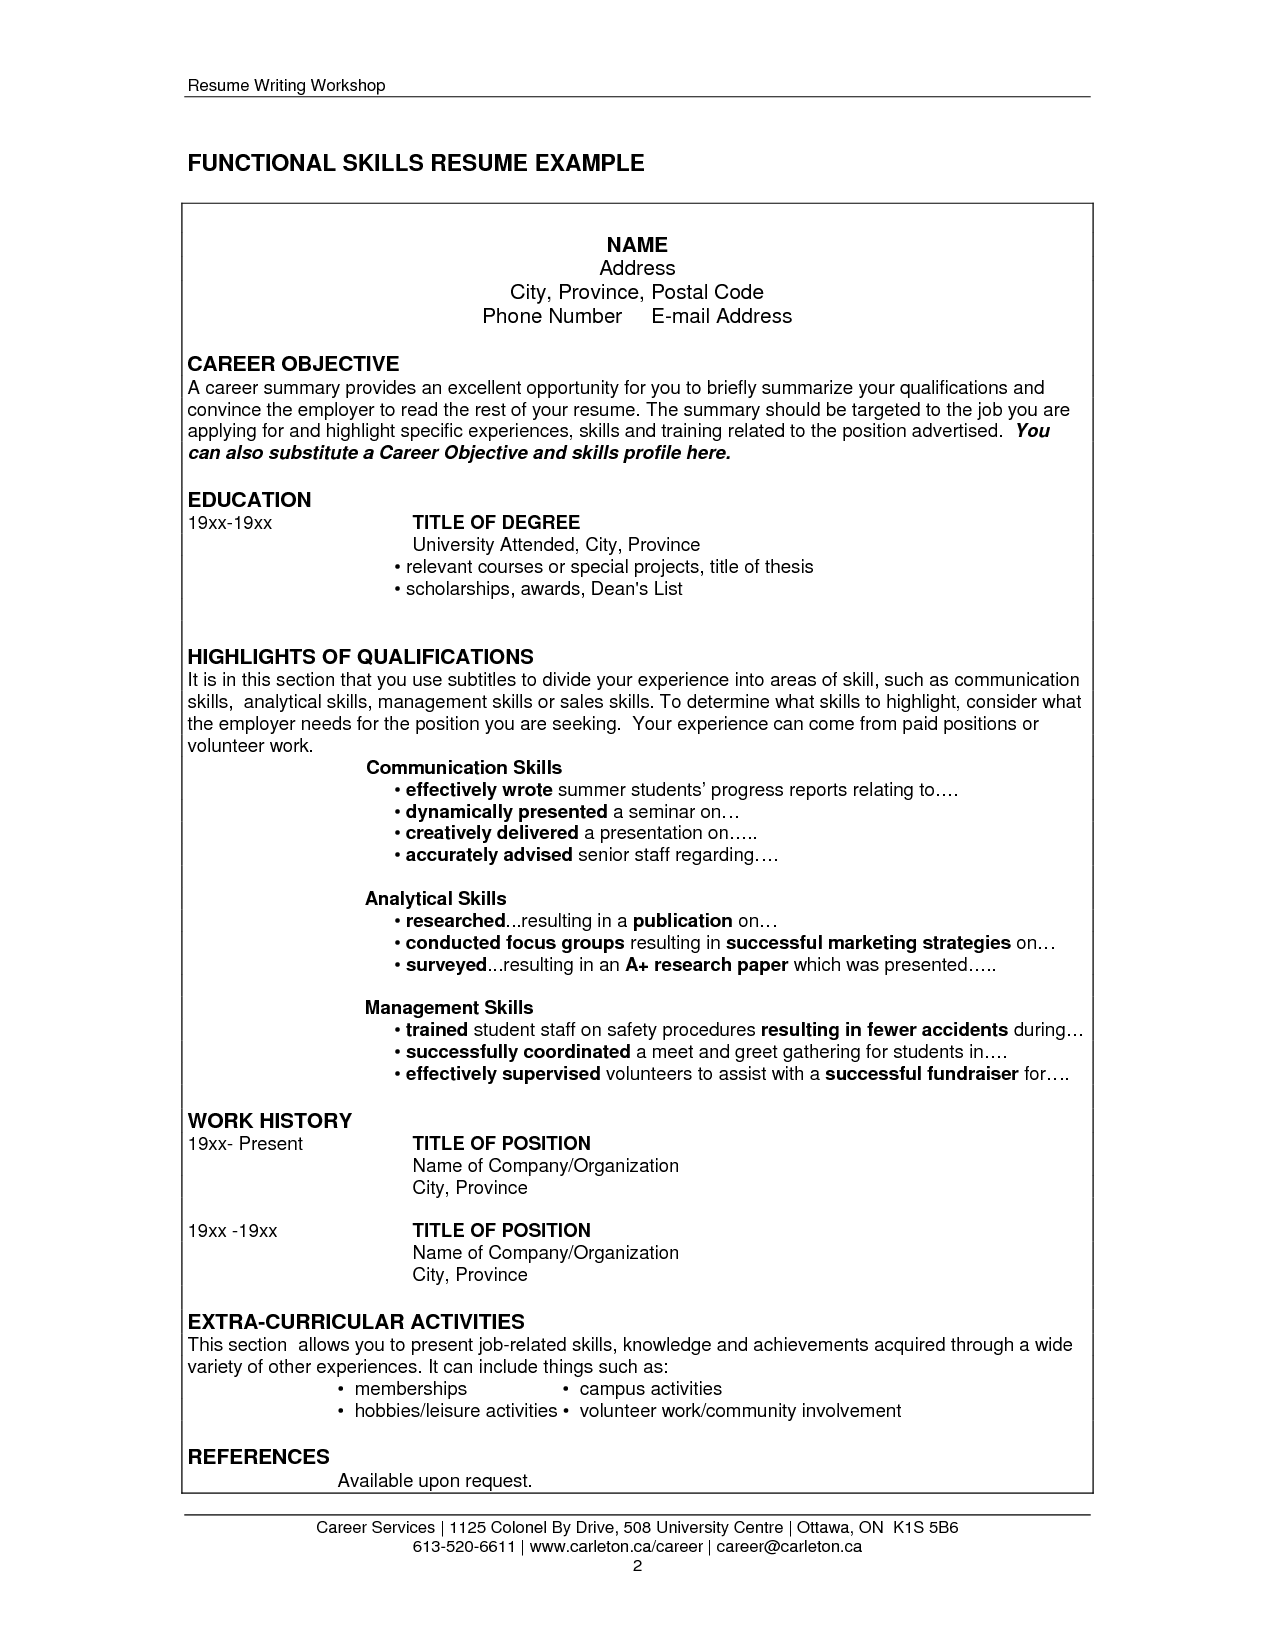 Skills On A Resume Image Result For Skills Resume Format  Business  Pinterest .